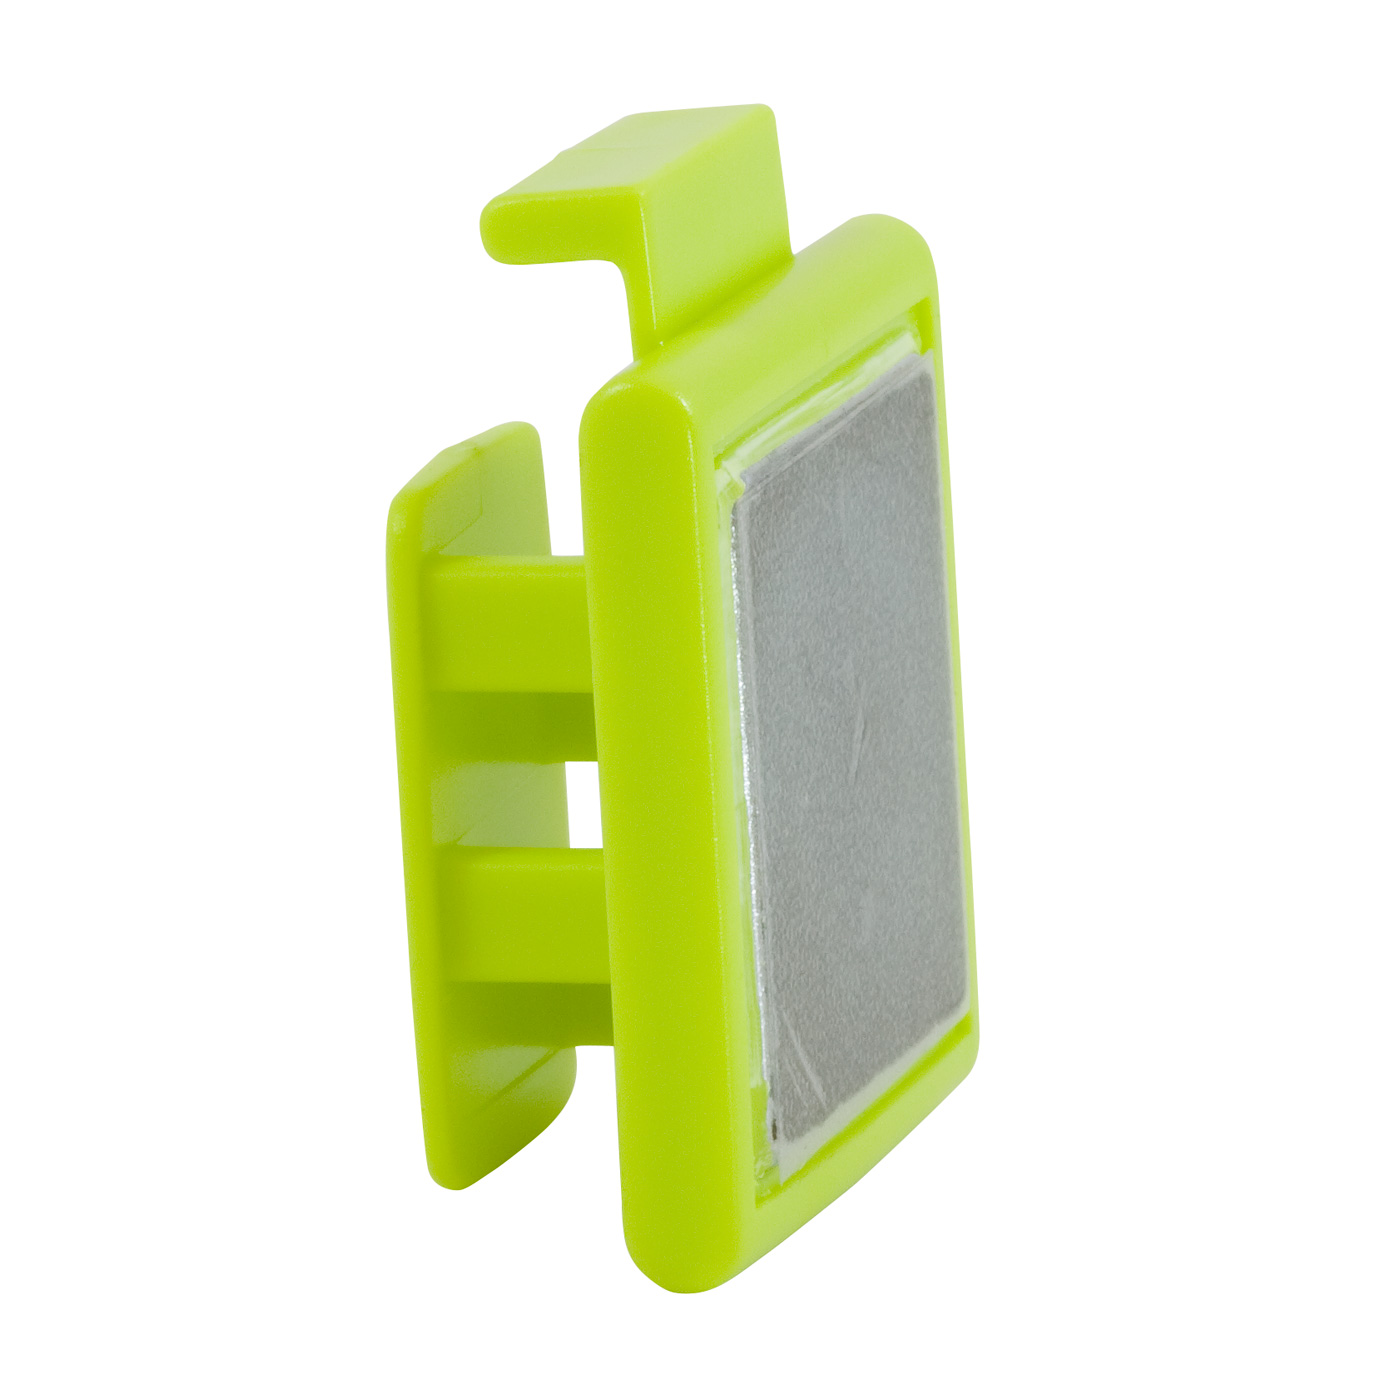 Magnetic Mounting Clip, ABS Plastic, F L